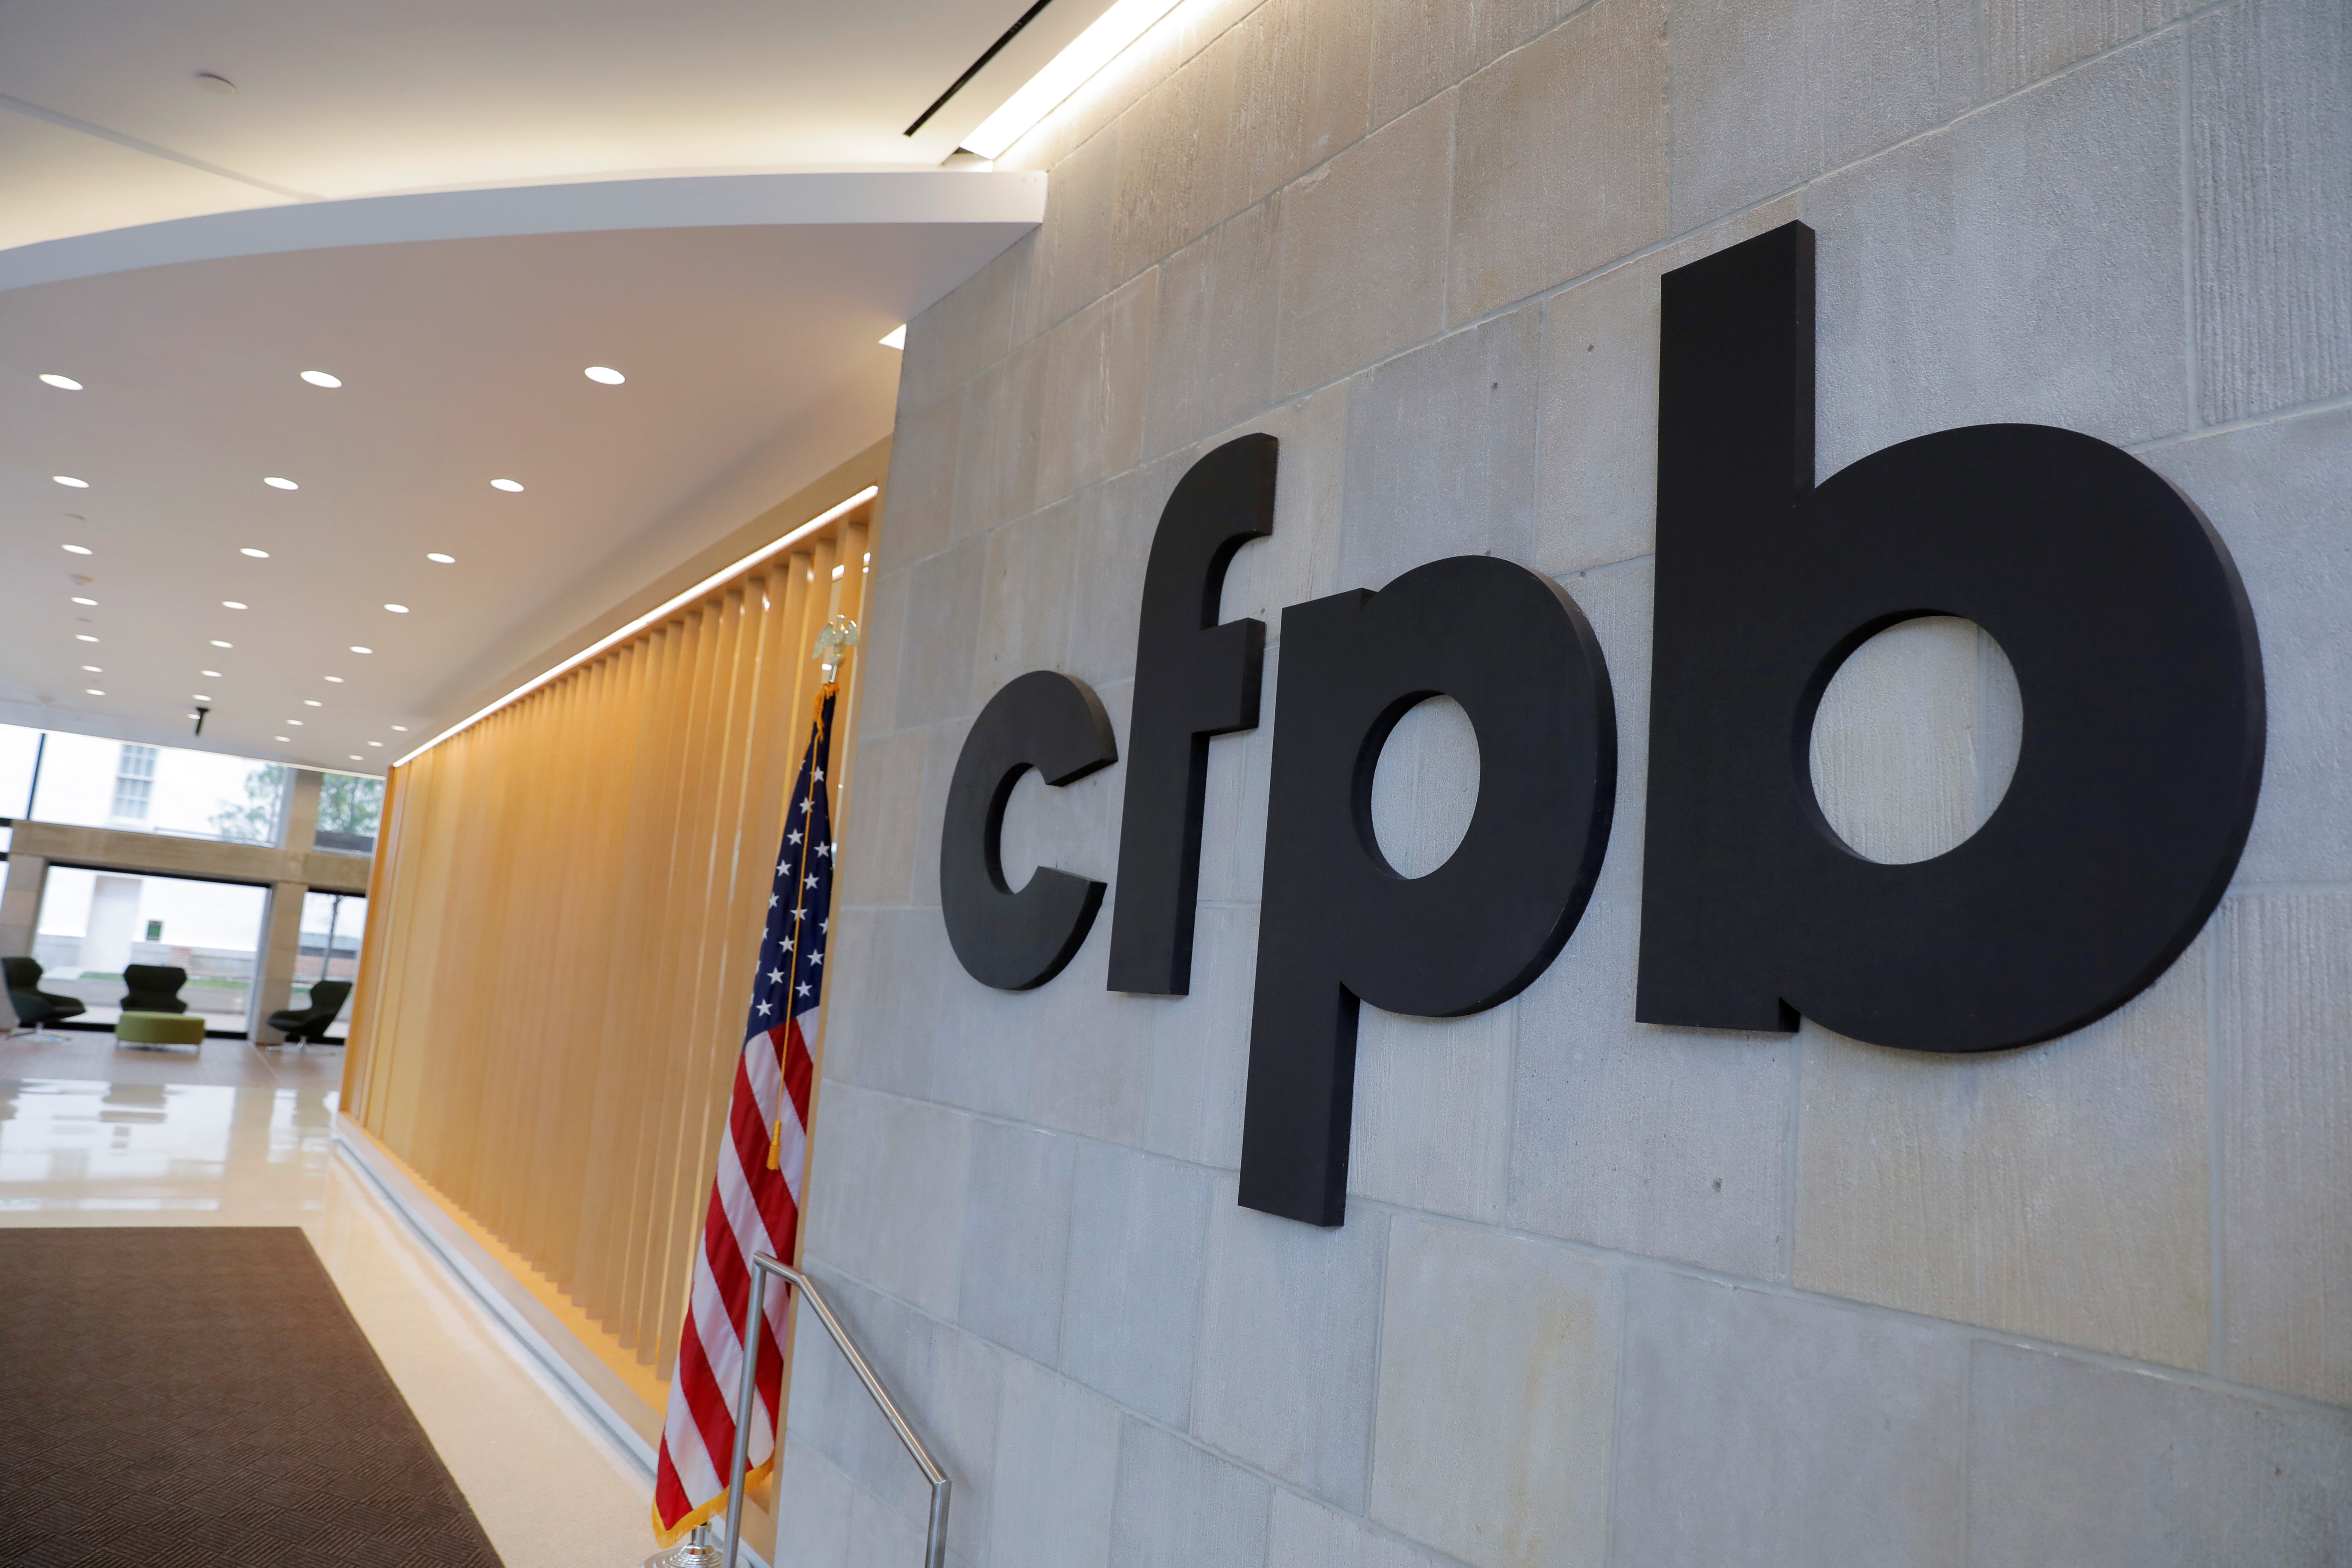 The Consumer Financial Protection Bureau (CFPB) headquarters in Washington, D.C. REUTERS/Andrew Kelly